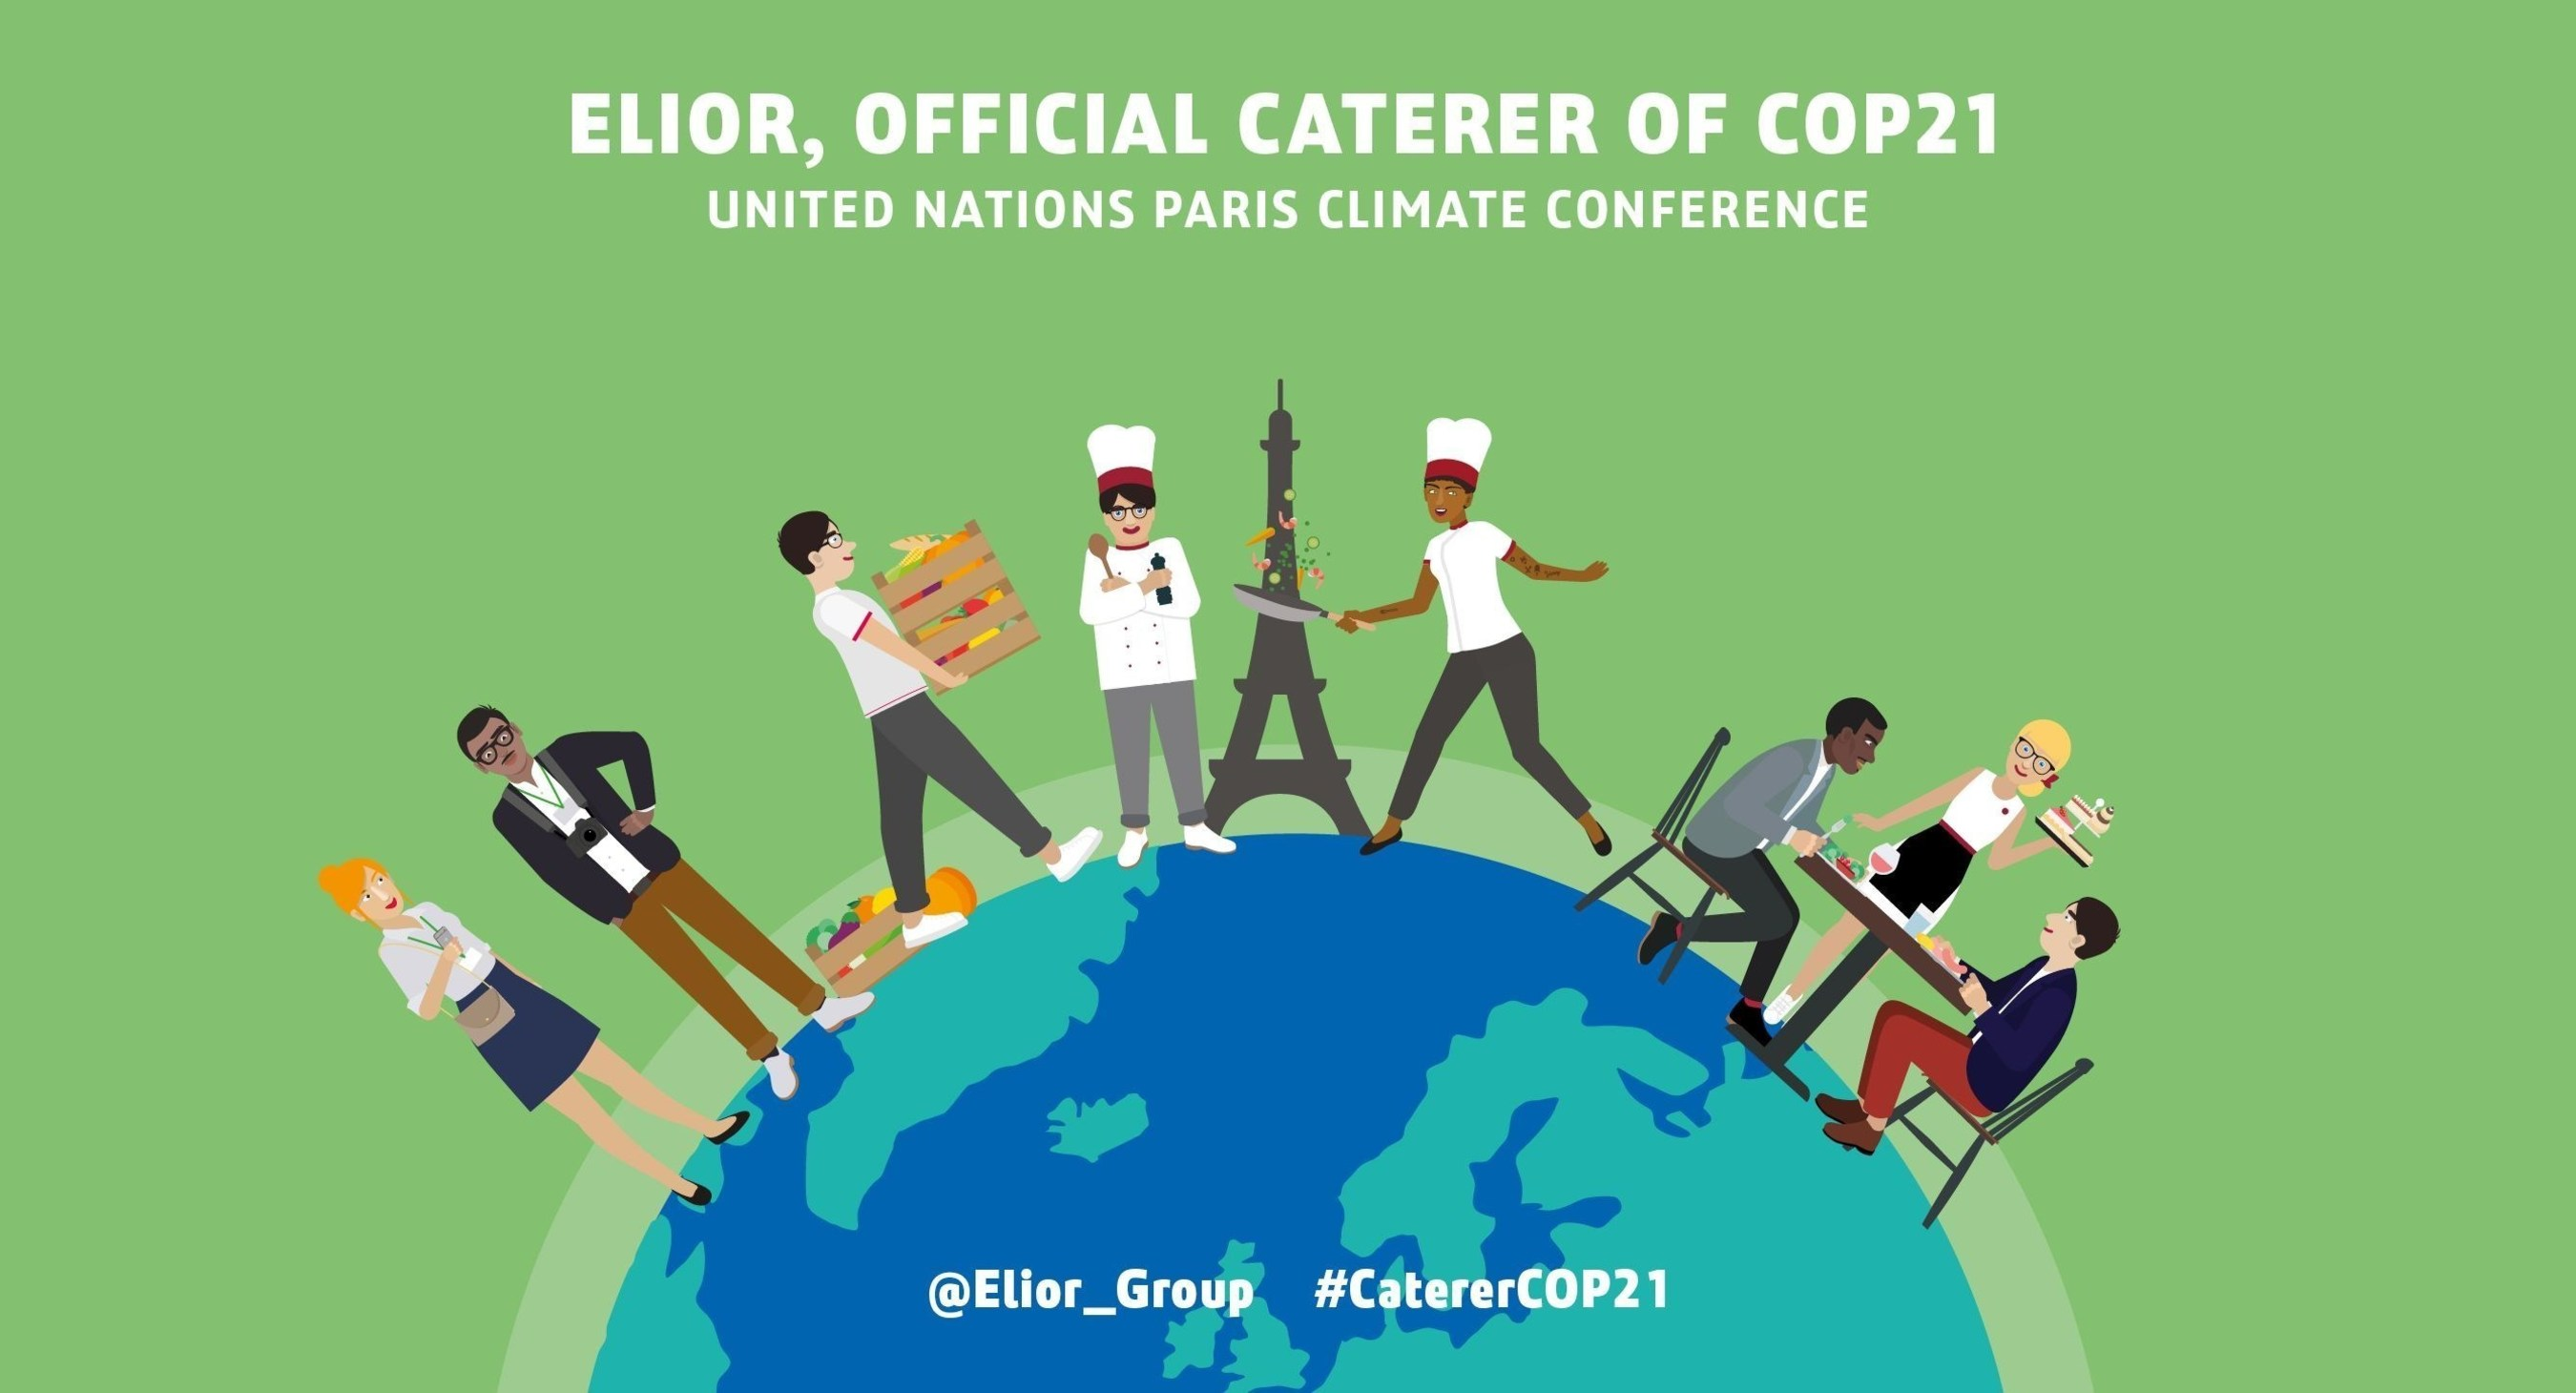 From November 30 to December 11, Elior Group, one of the world's leading operators in the contracted food and support services industry, is leveraging its expertise to serve the 21st Conference of the Parties (COP21), the United Nations Climate Change Conference. Committed for more than 10 years to socially and environmentally responsible practices in every step of the value chain, Elior Group has been chosen as official caterer of the largest diplomatic event dedicated to the preservation of the planet.